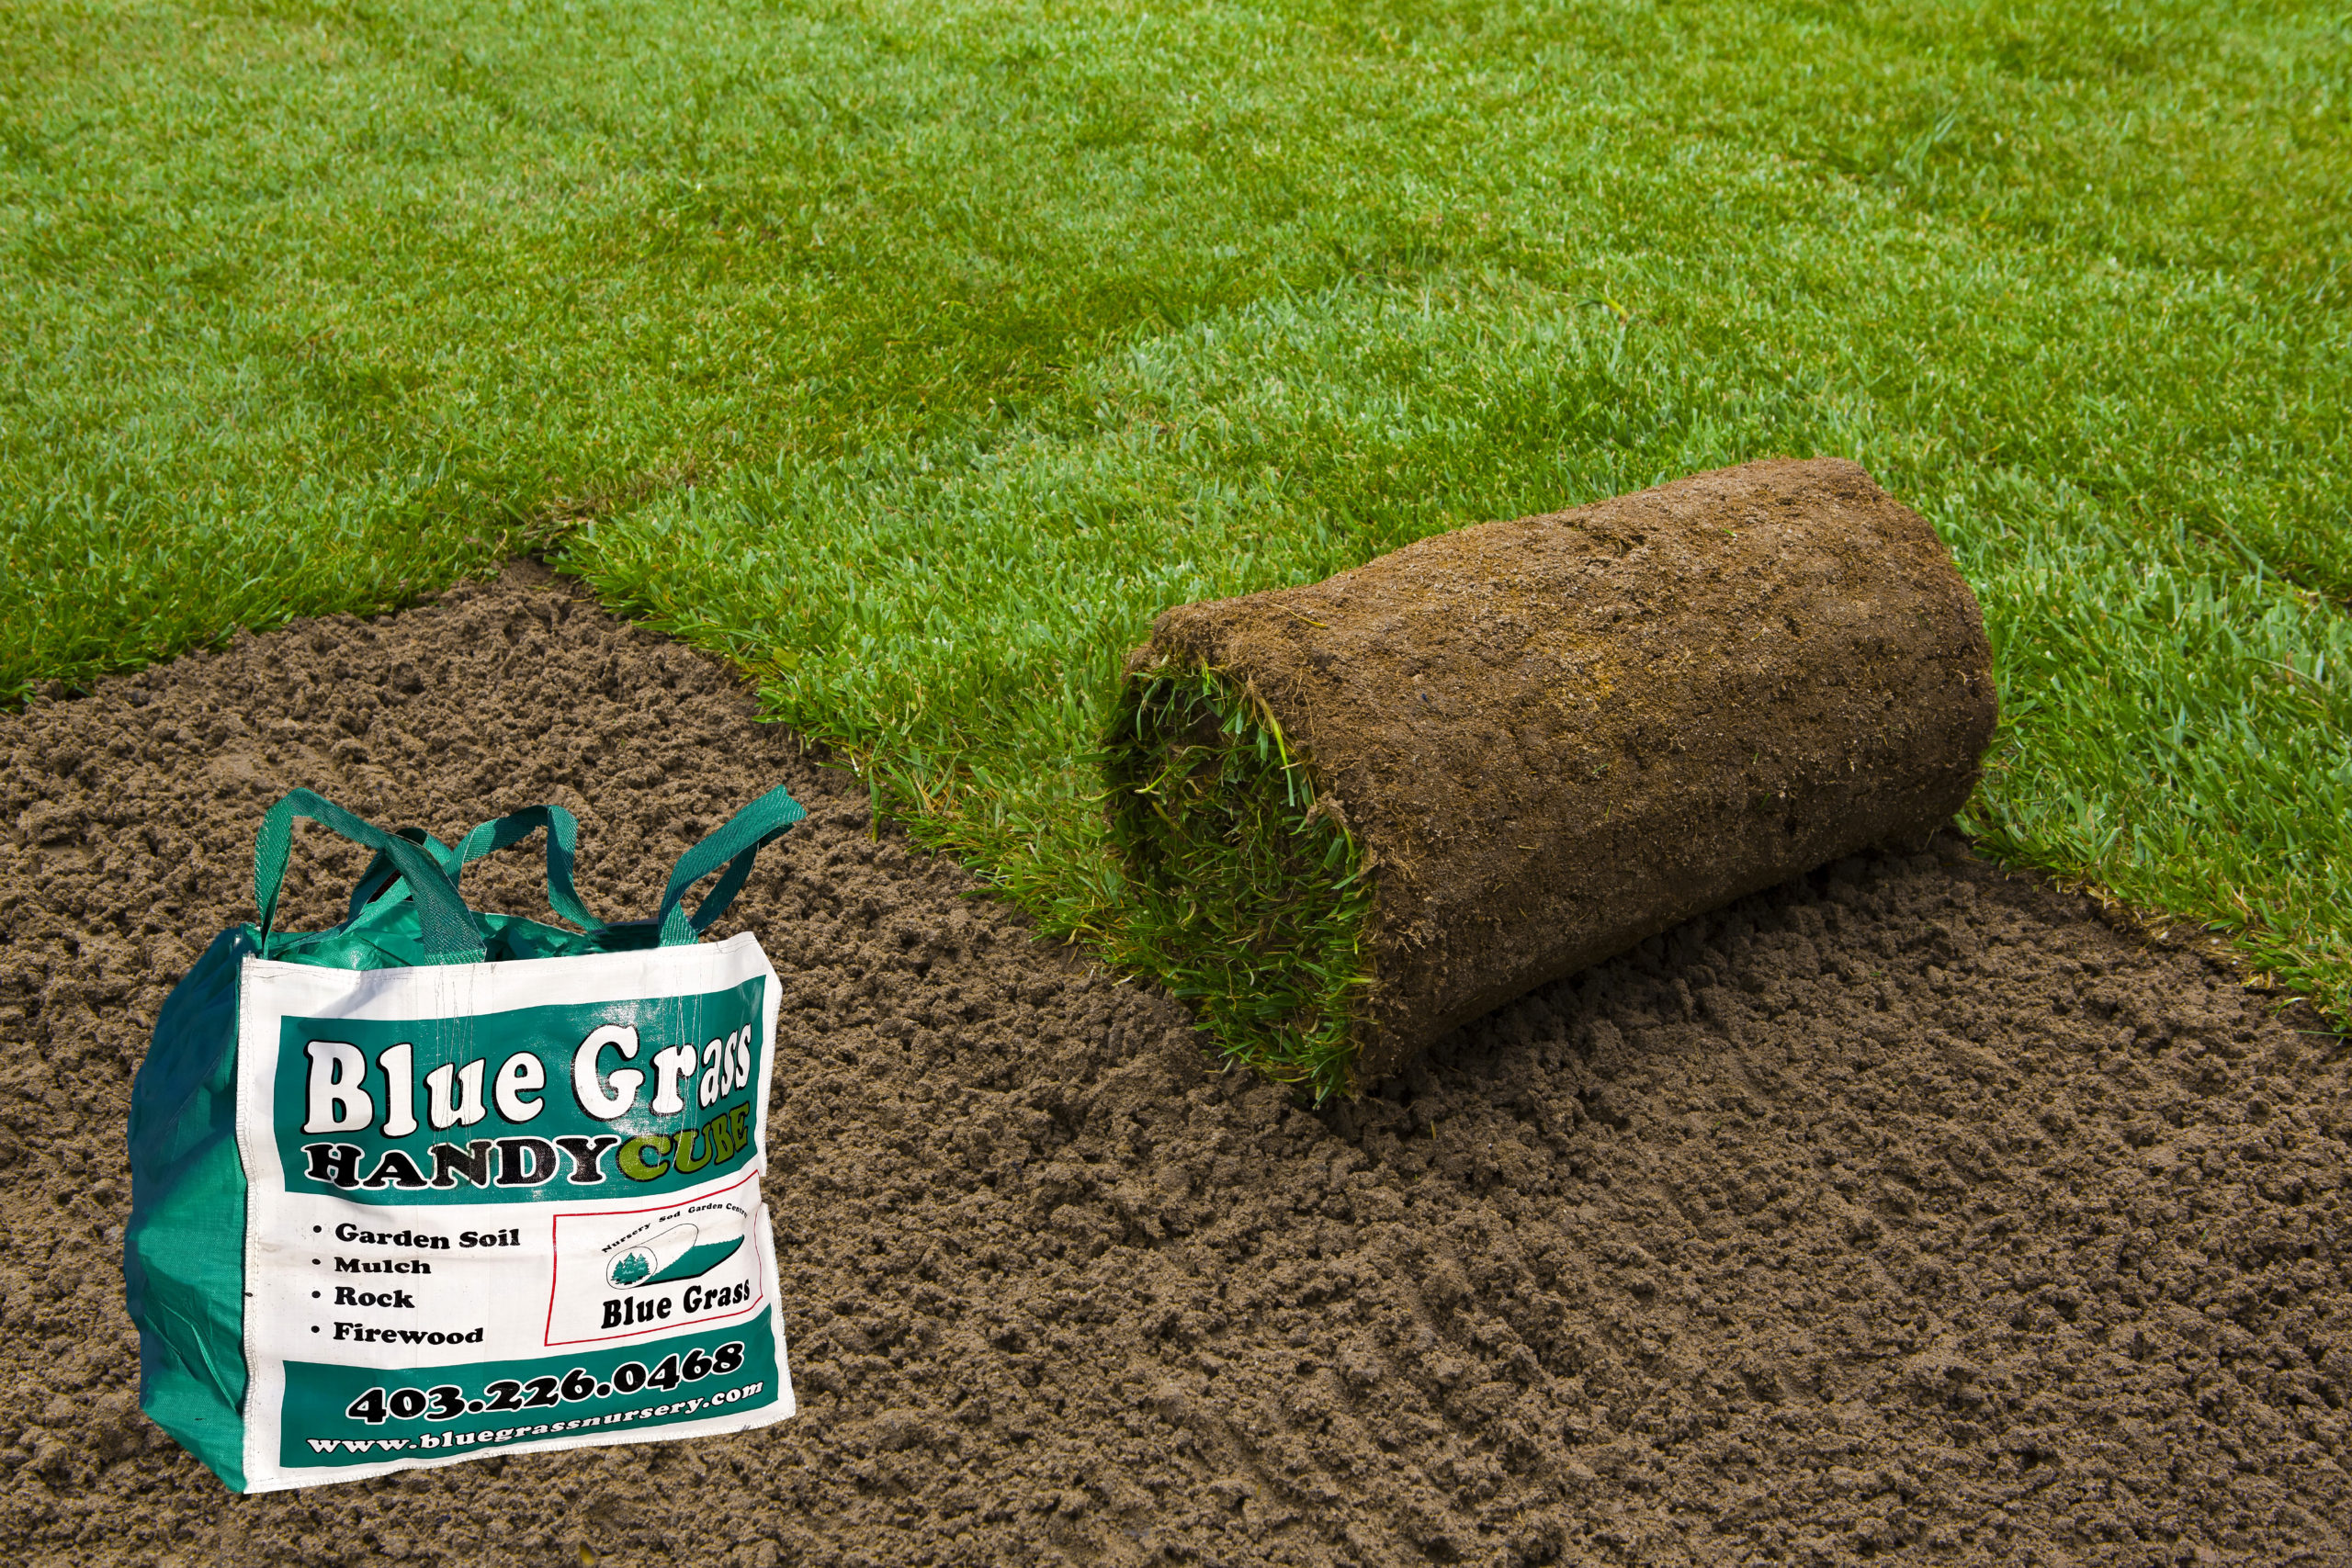 sod roll with handy cube